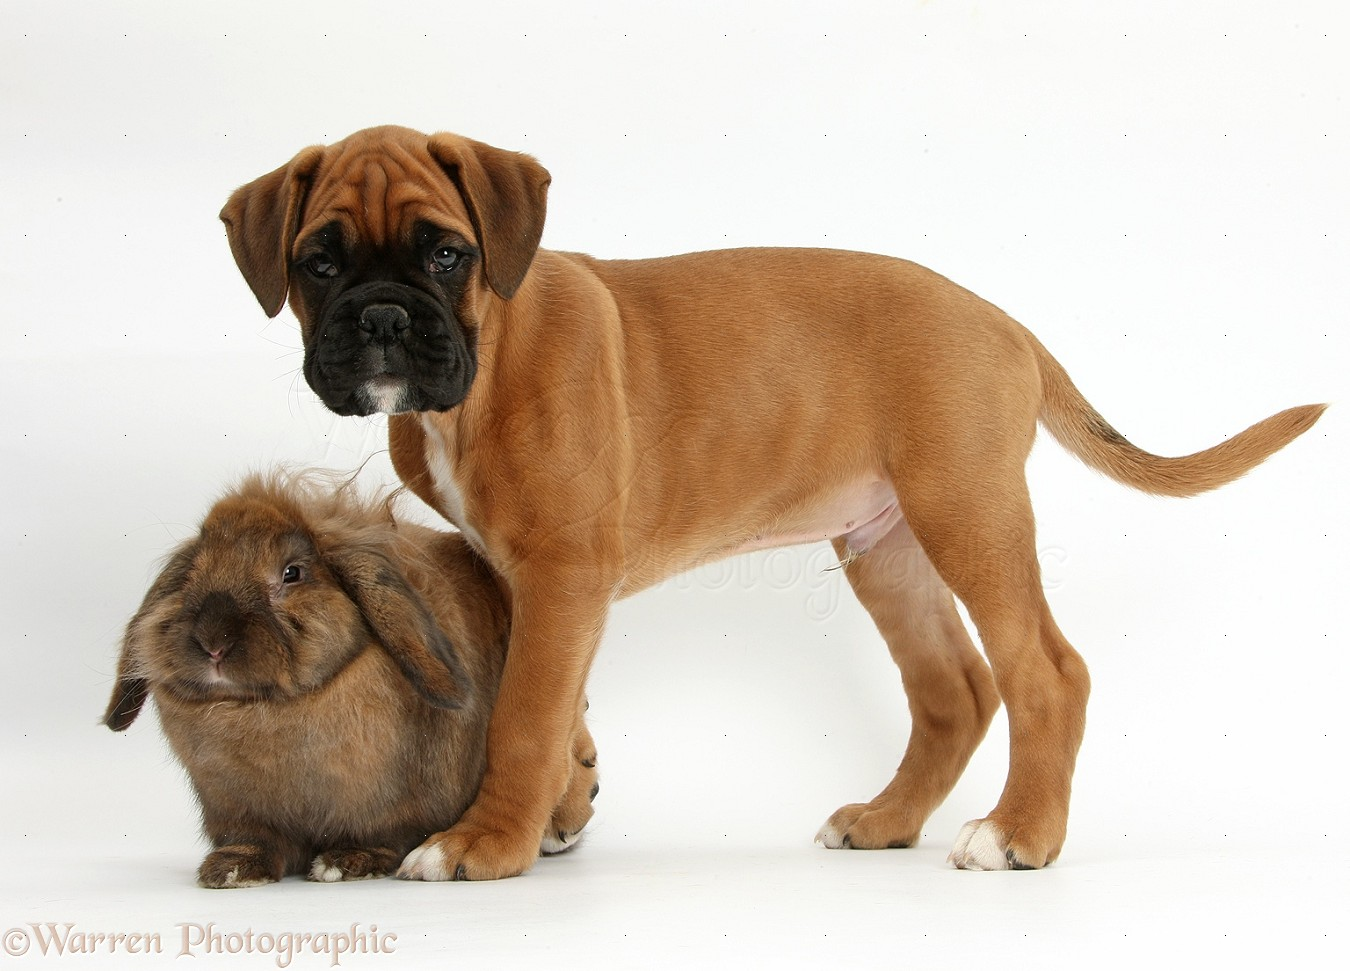 Boxer-Bunny   Boxer dogs, Boxer, Dogs and puppies  Boxer Dogs With Bunnies